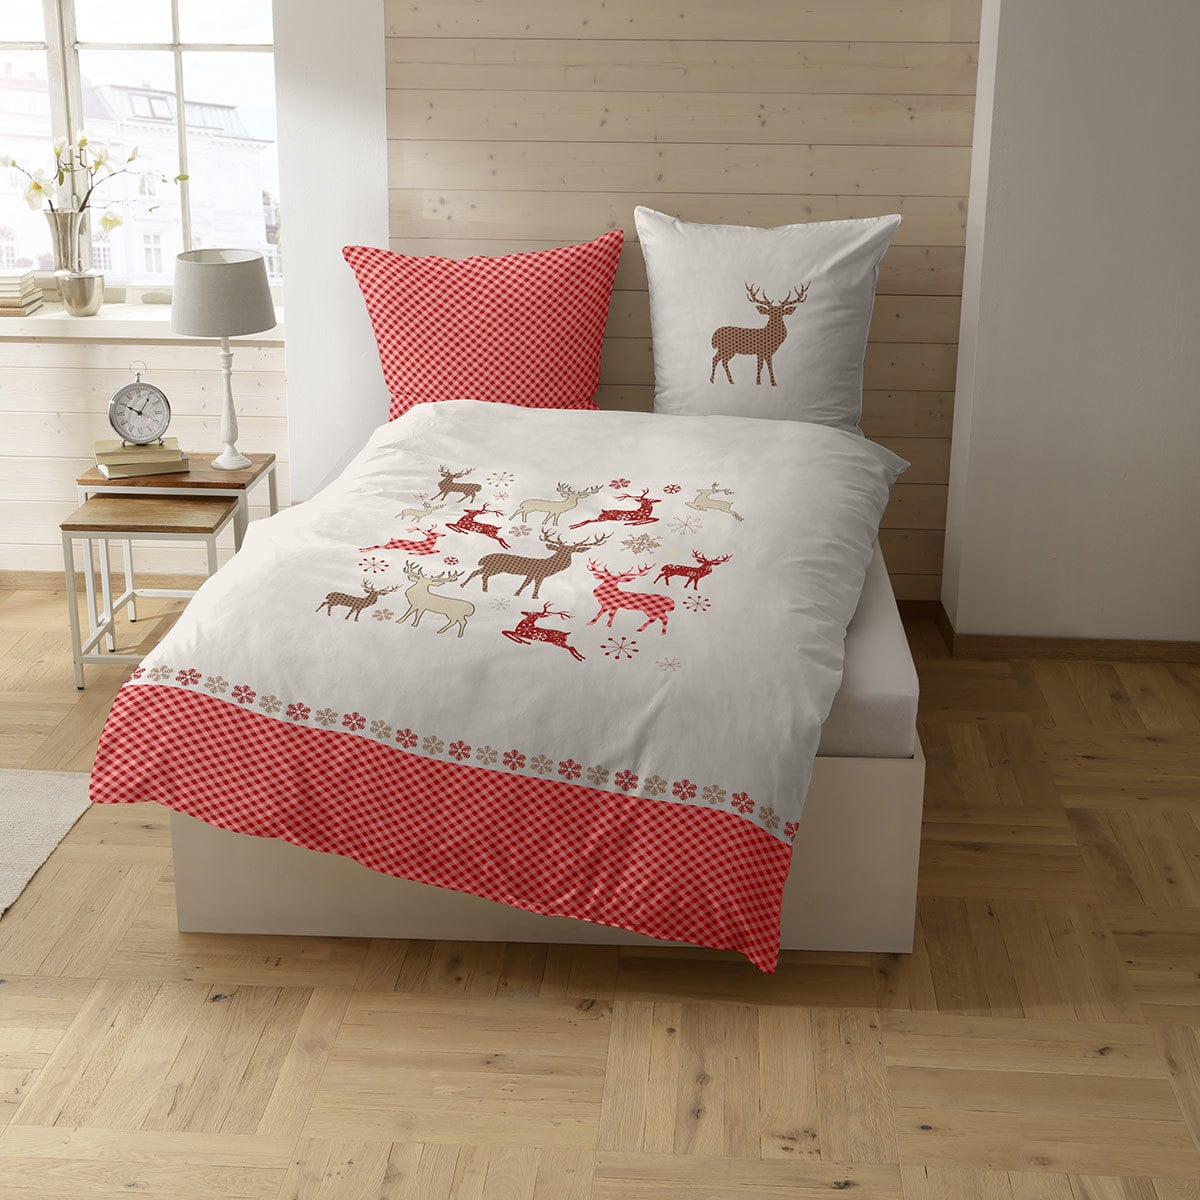 casatex feinbiber bettw sche felino rot beige g nstig online kaufen bei bettwaren shop. Black Bedroom Furniture Sets. Home Design Ideas